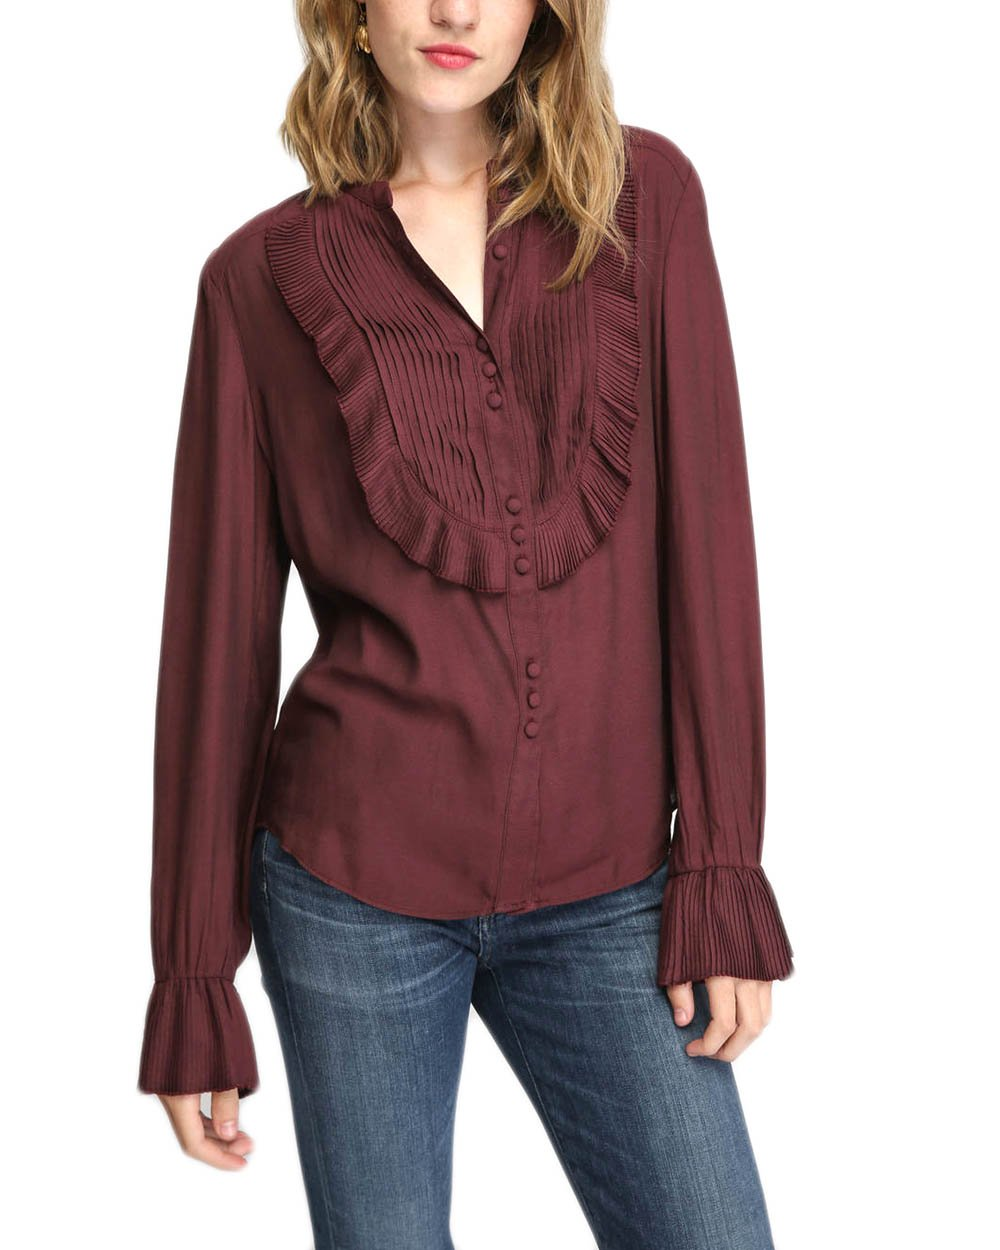 Free People Women's Pintuck Chiffon Blouse (Wine, Large)